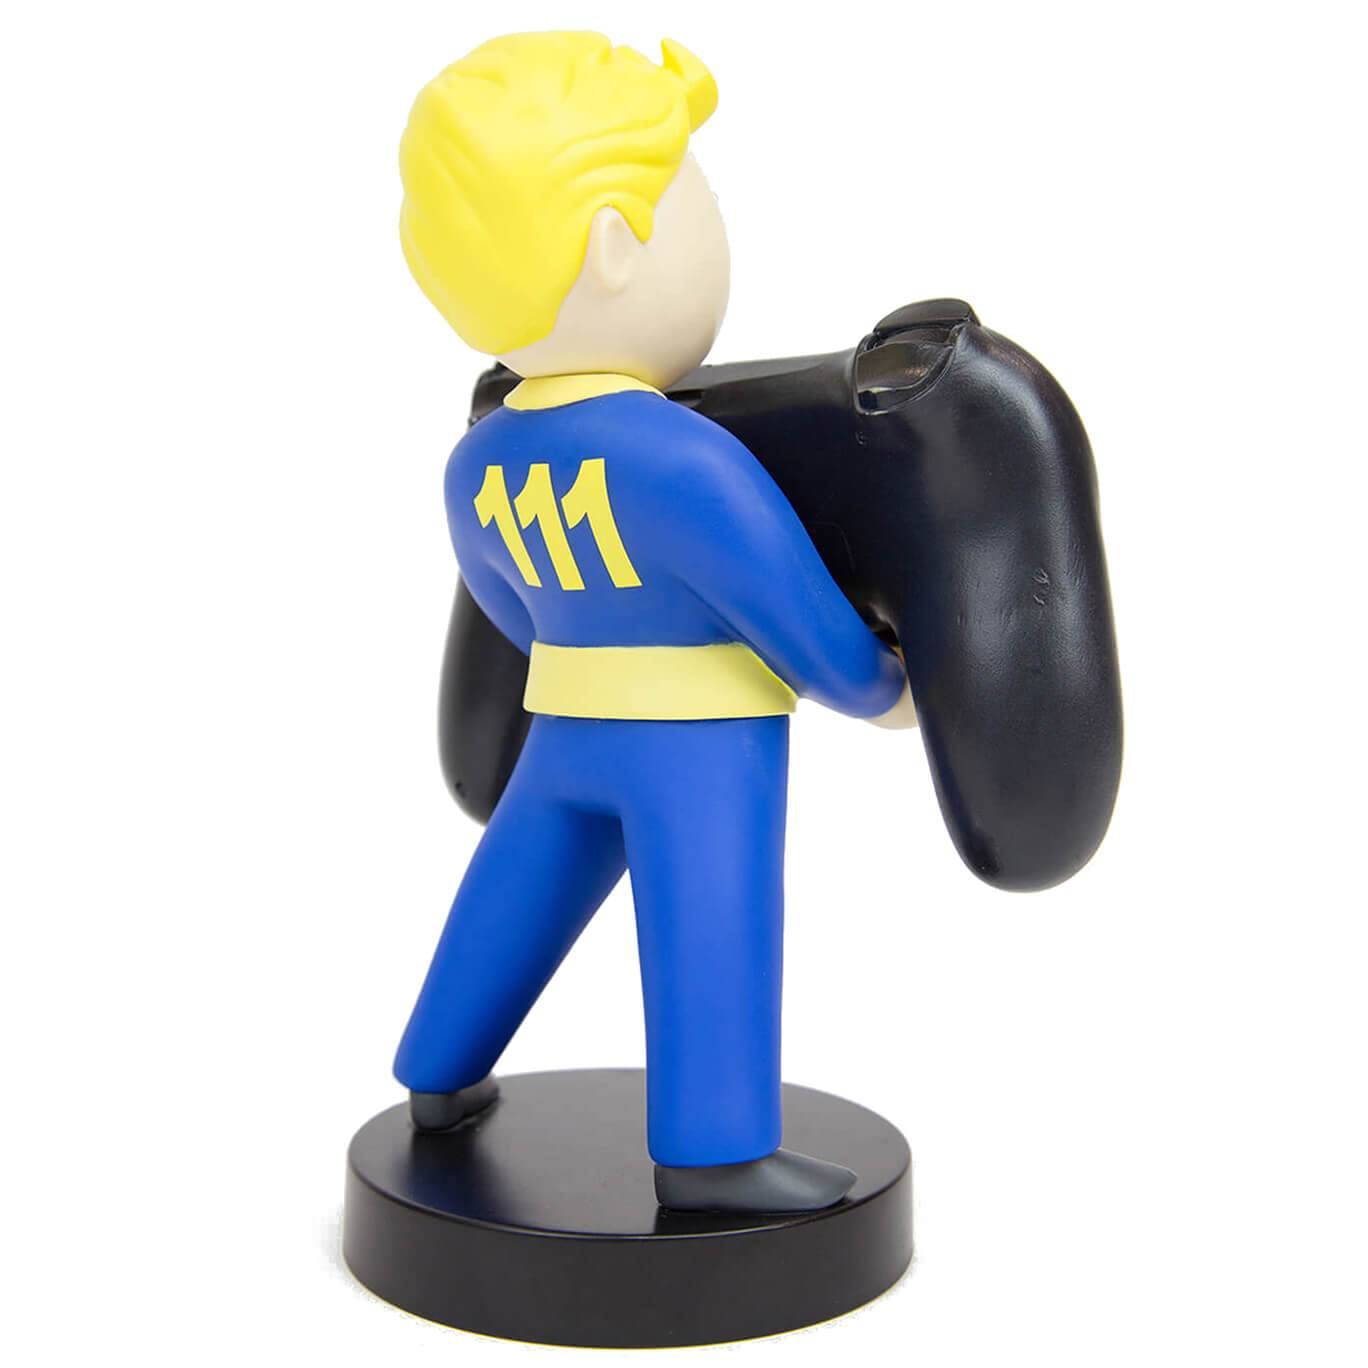 Cable Guys Fallout Collectable Vault Boy 111 8 Inch Cable Guy Controller and Smartphone Stand